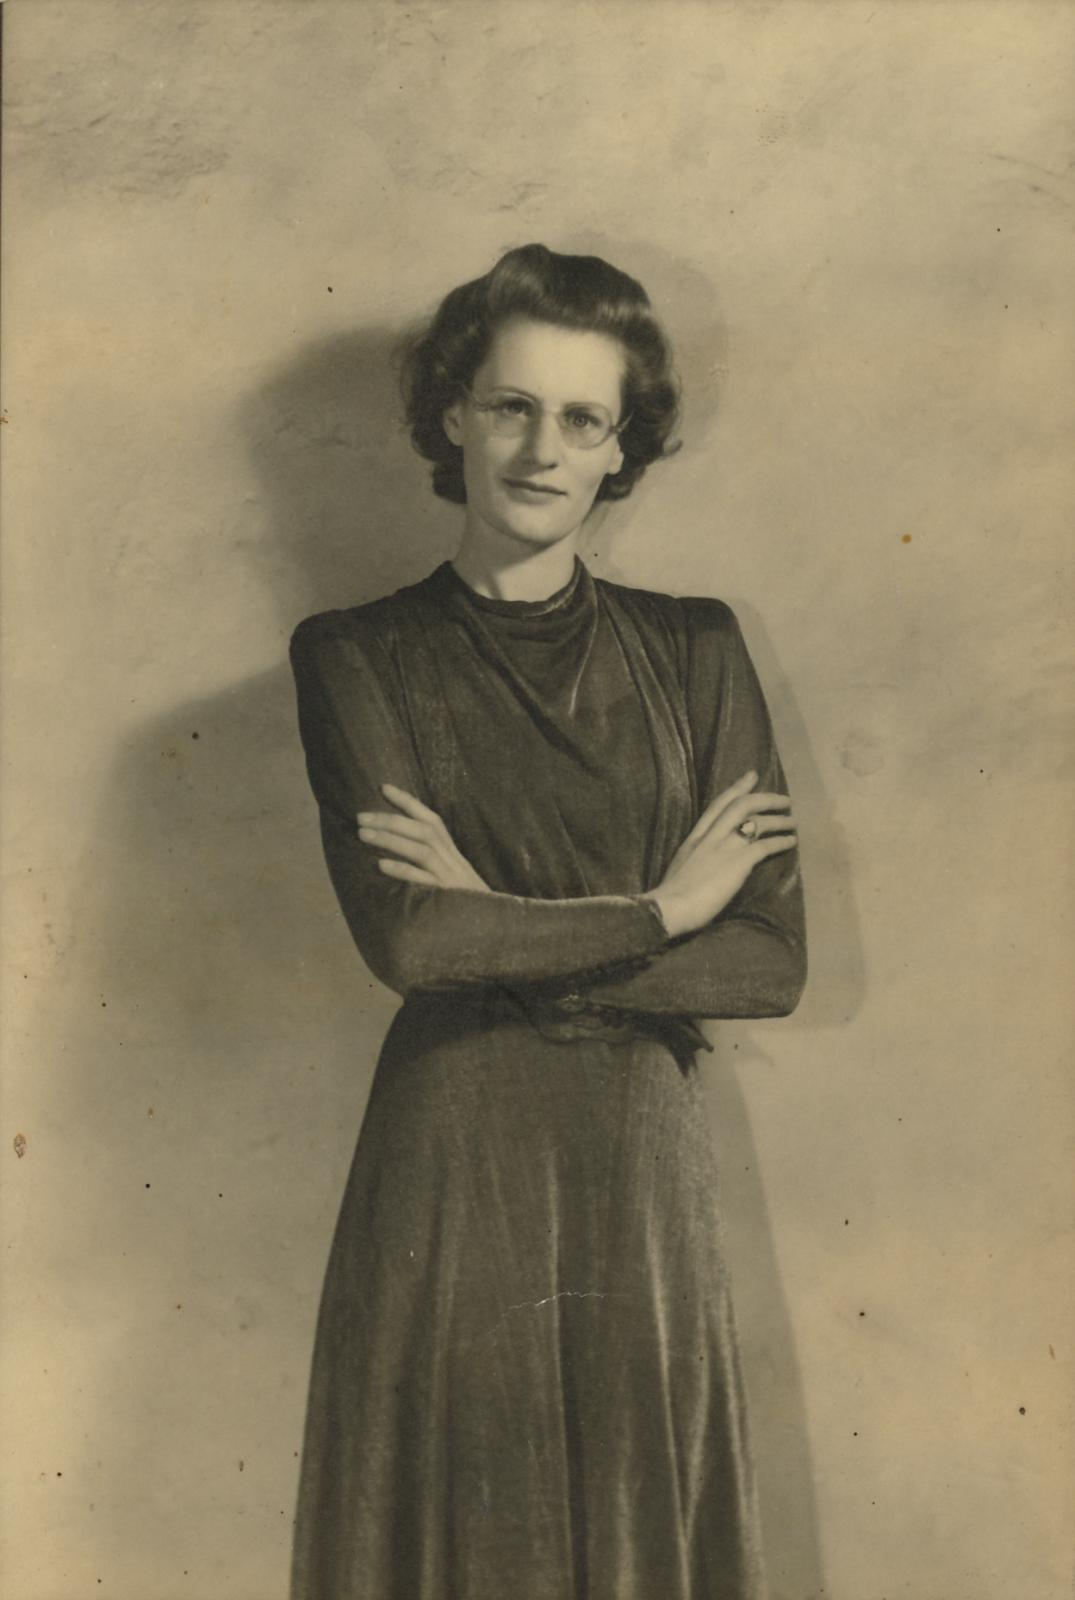 Diana Athill in 1929 LMH alumna